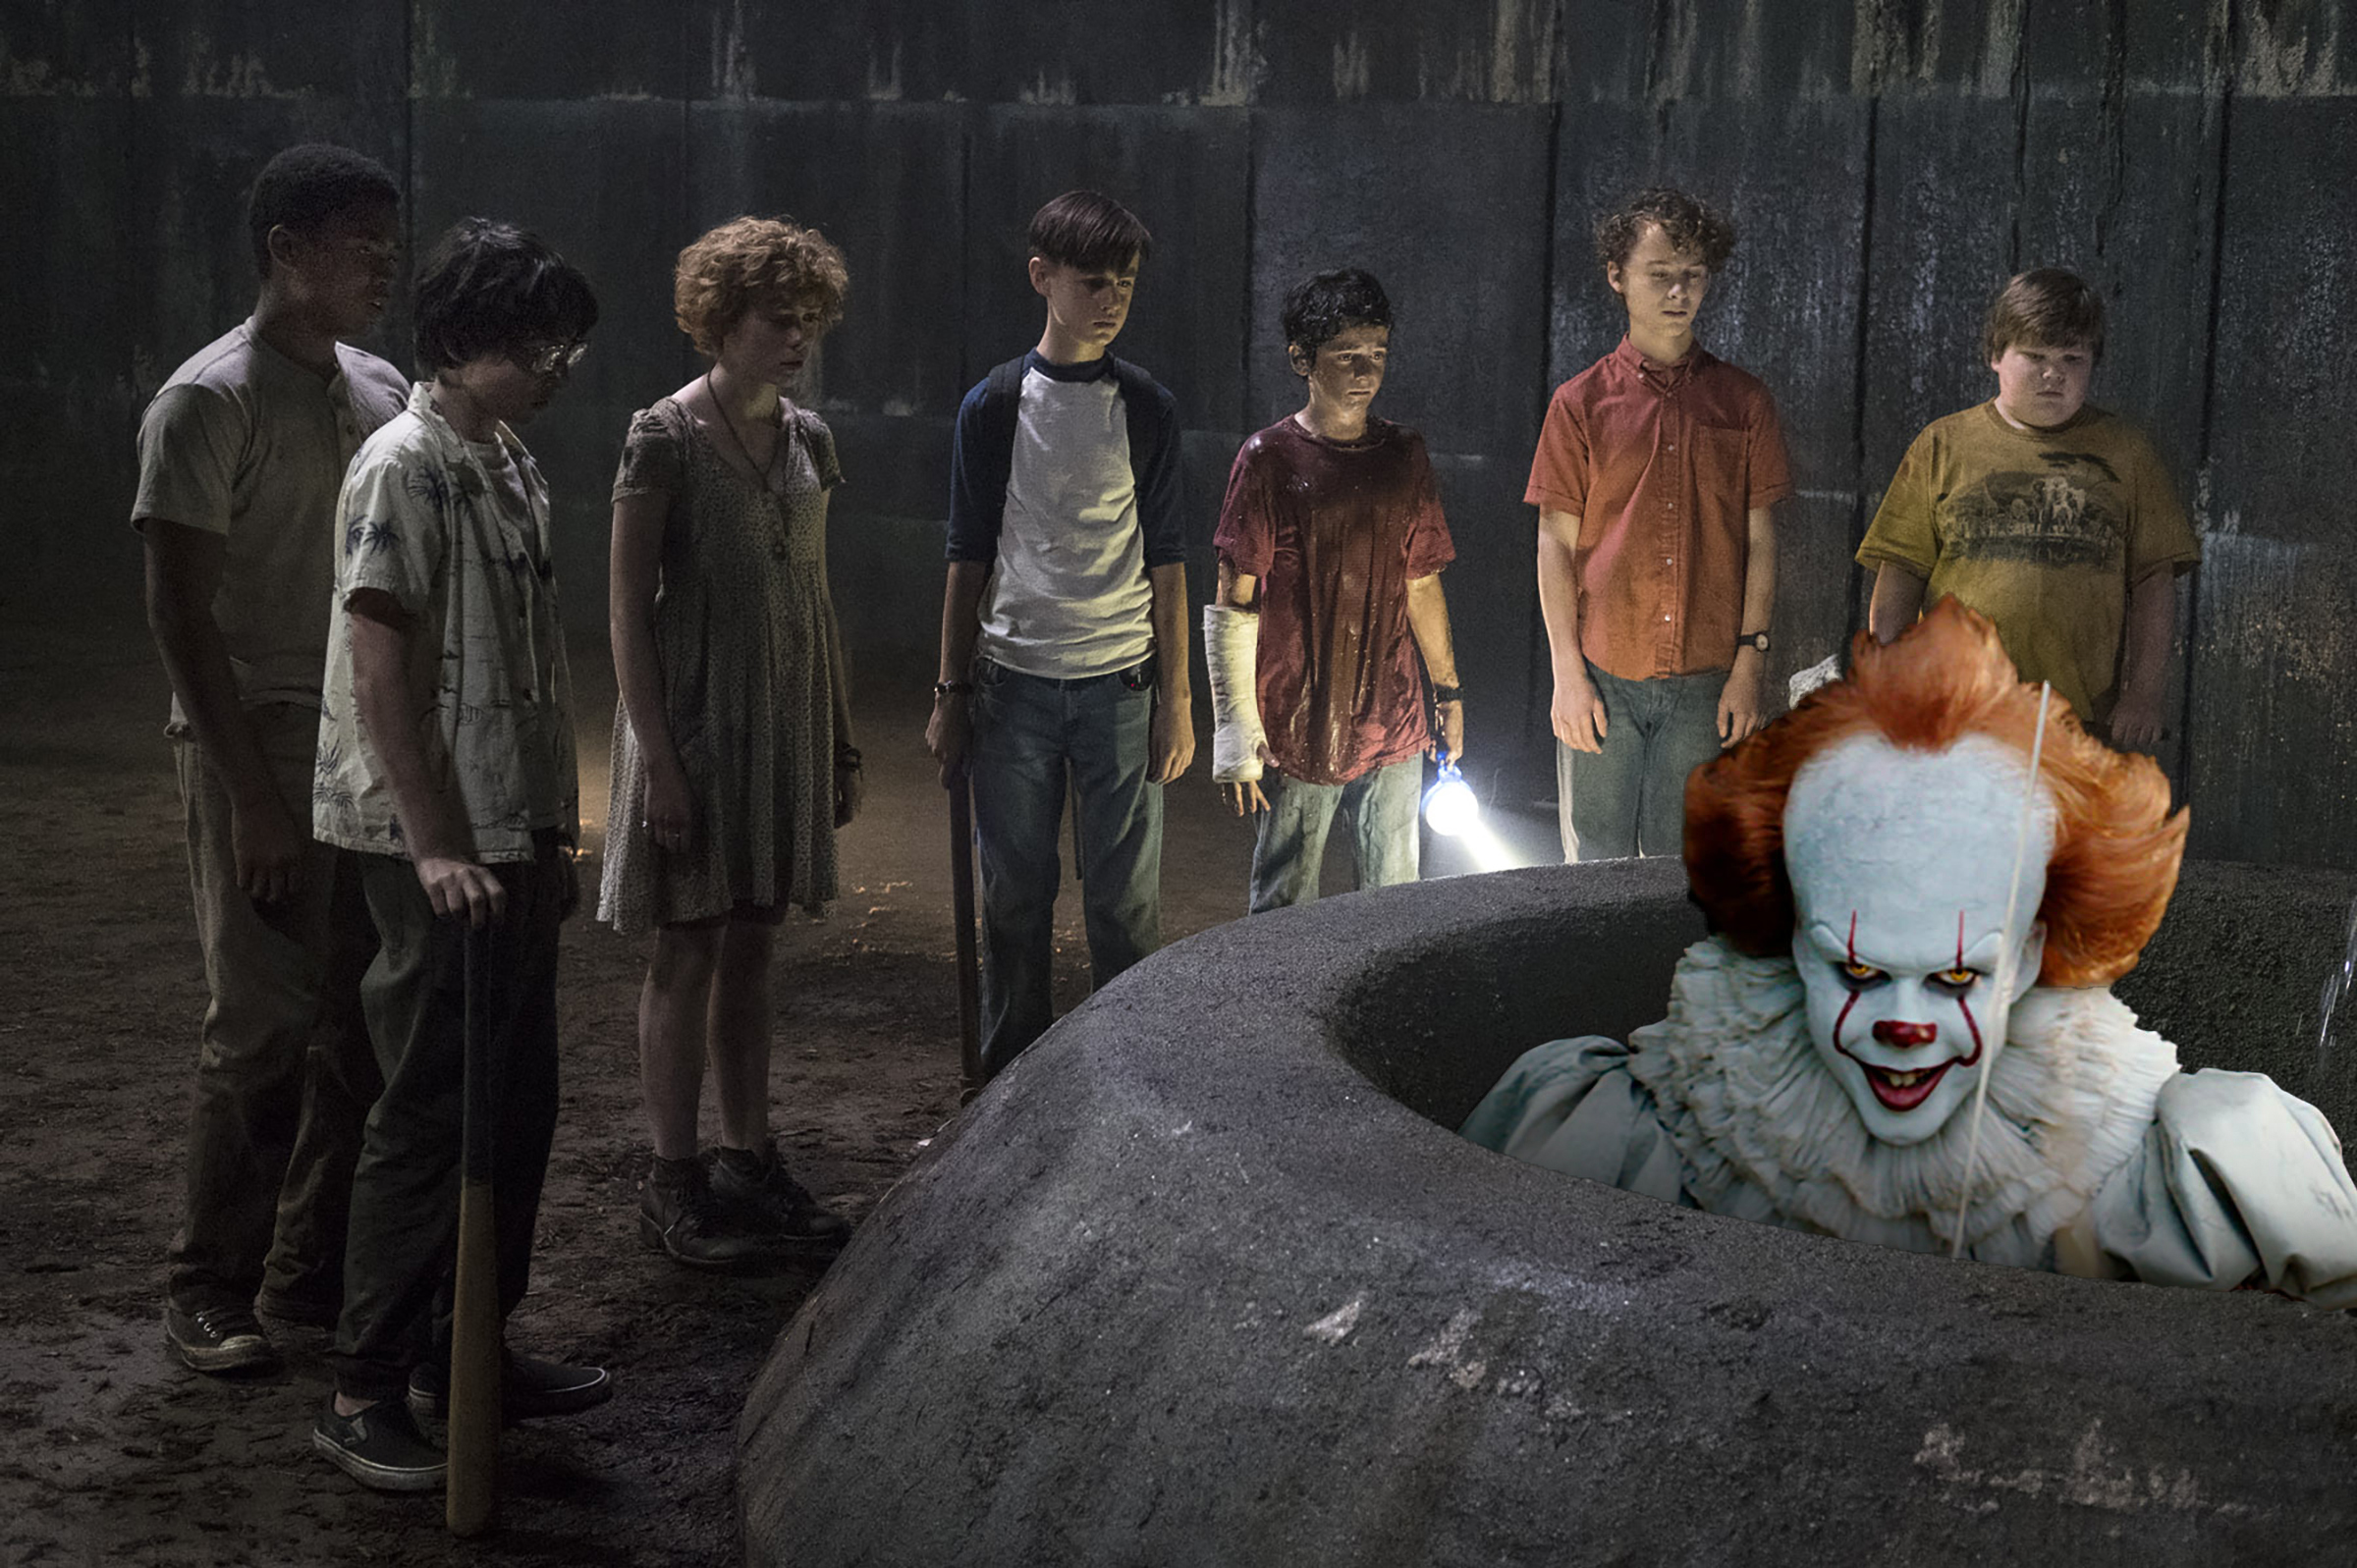 efc04c6f2 All Those Kids From Stephen King's 'It,' Ranked | Inverse